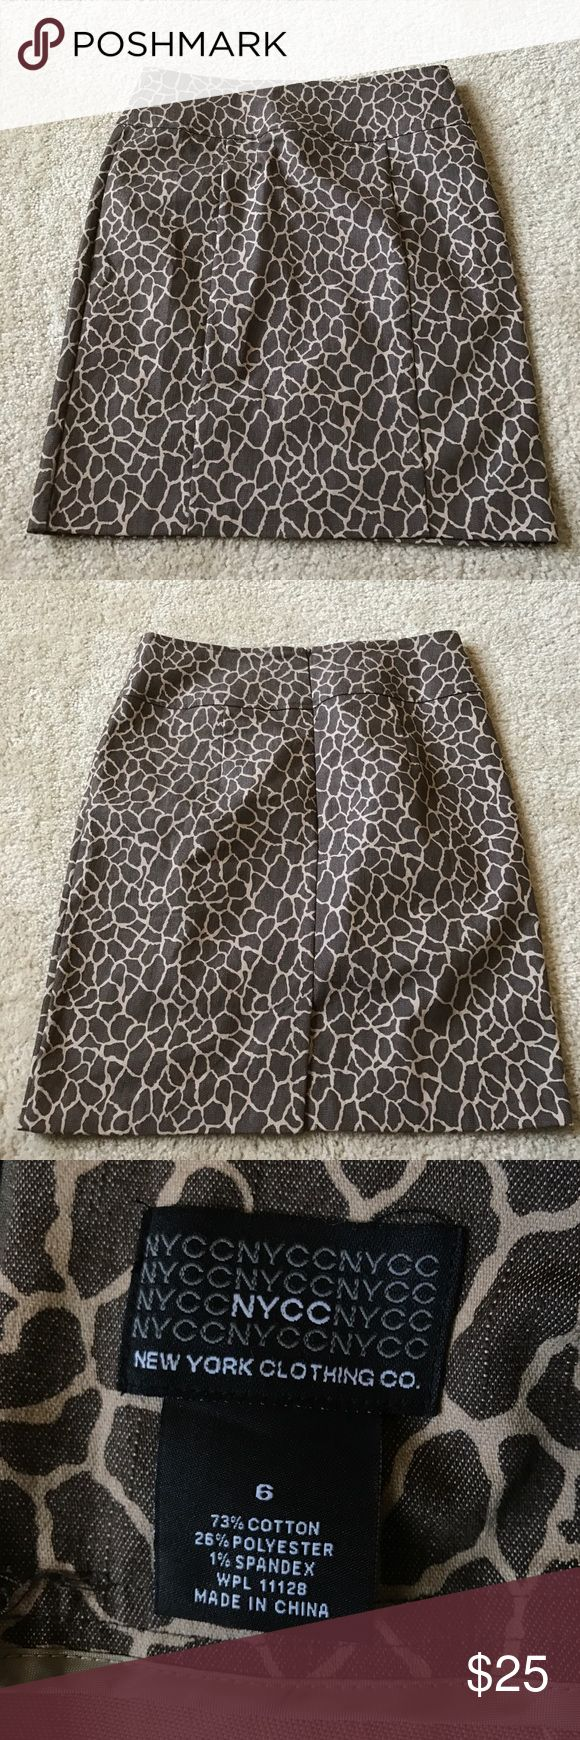 NY & Co Giraffe Print Pencil Skirt This is an adorable pencil skirt that is an excellent condition. It is great for work. There are no rips or stains. It is a light weight denim-ish fabric. Size 6. Please ask if you have any questions! New York & Company Skirts Pencil